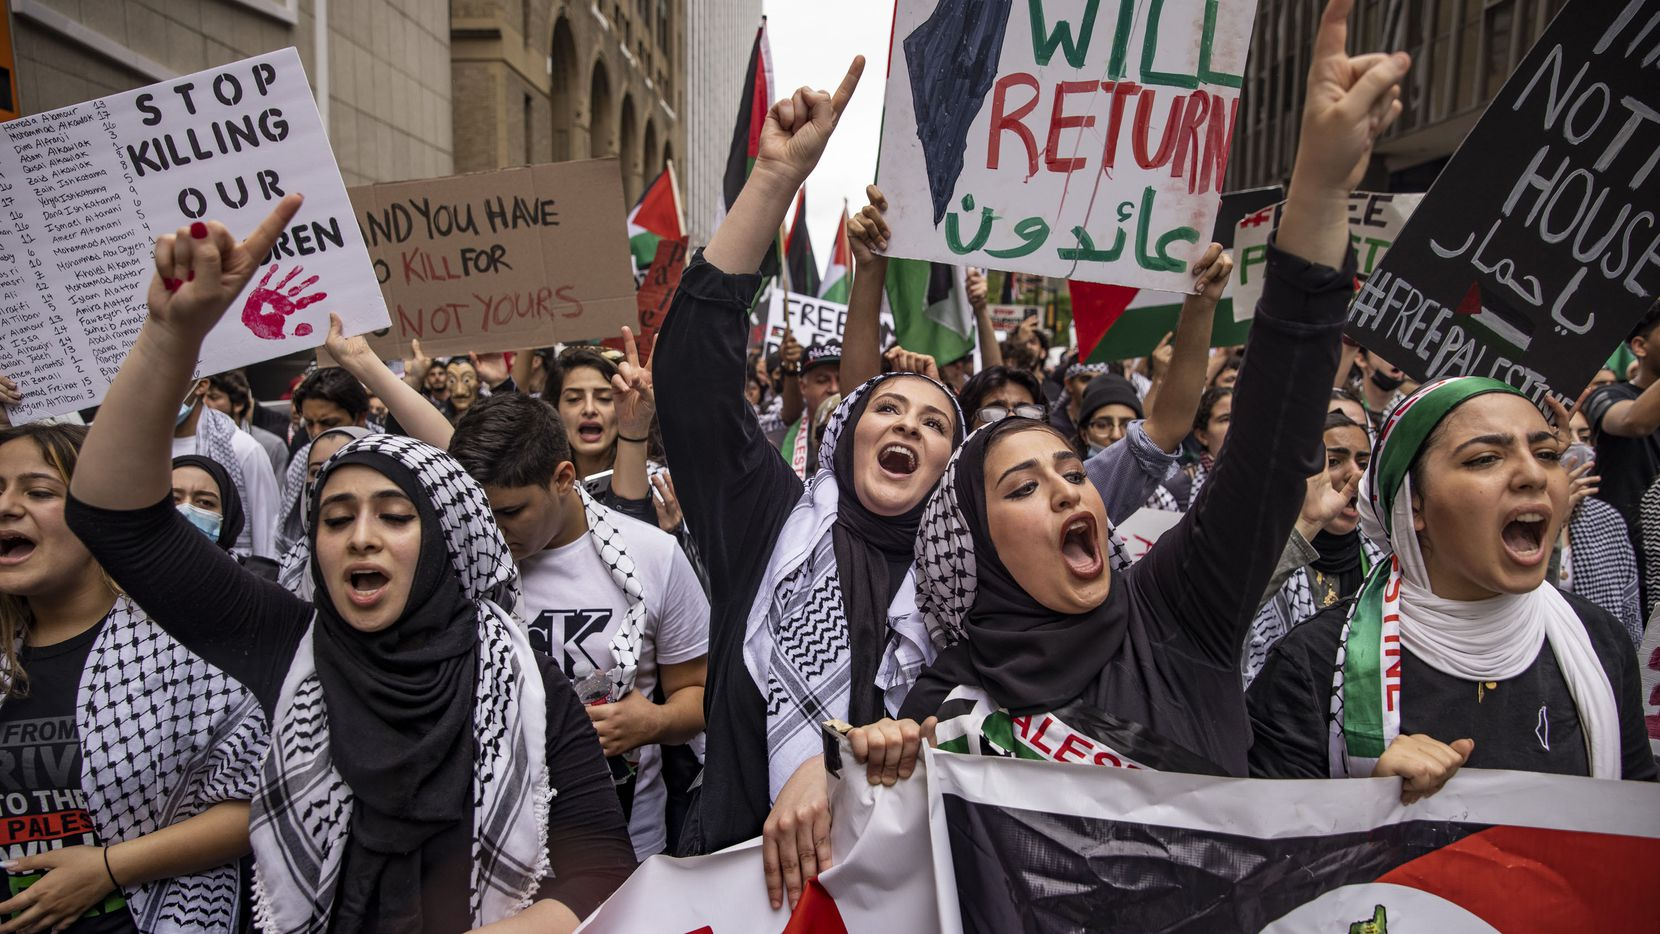 Demonstrators in Sunday's pro-Palestine event rallied at Dallas' Belo Garden before marching through several downtown streets and returning to the park.